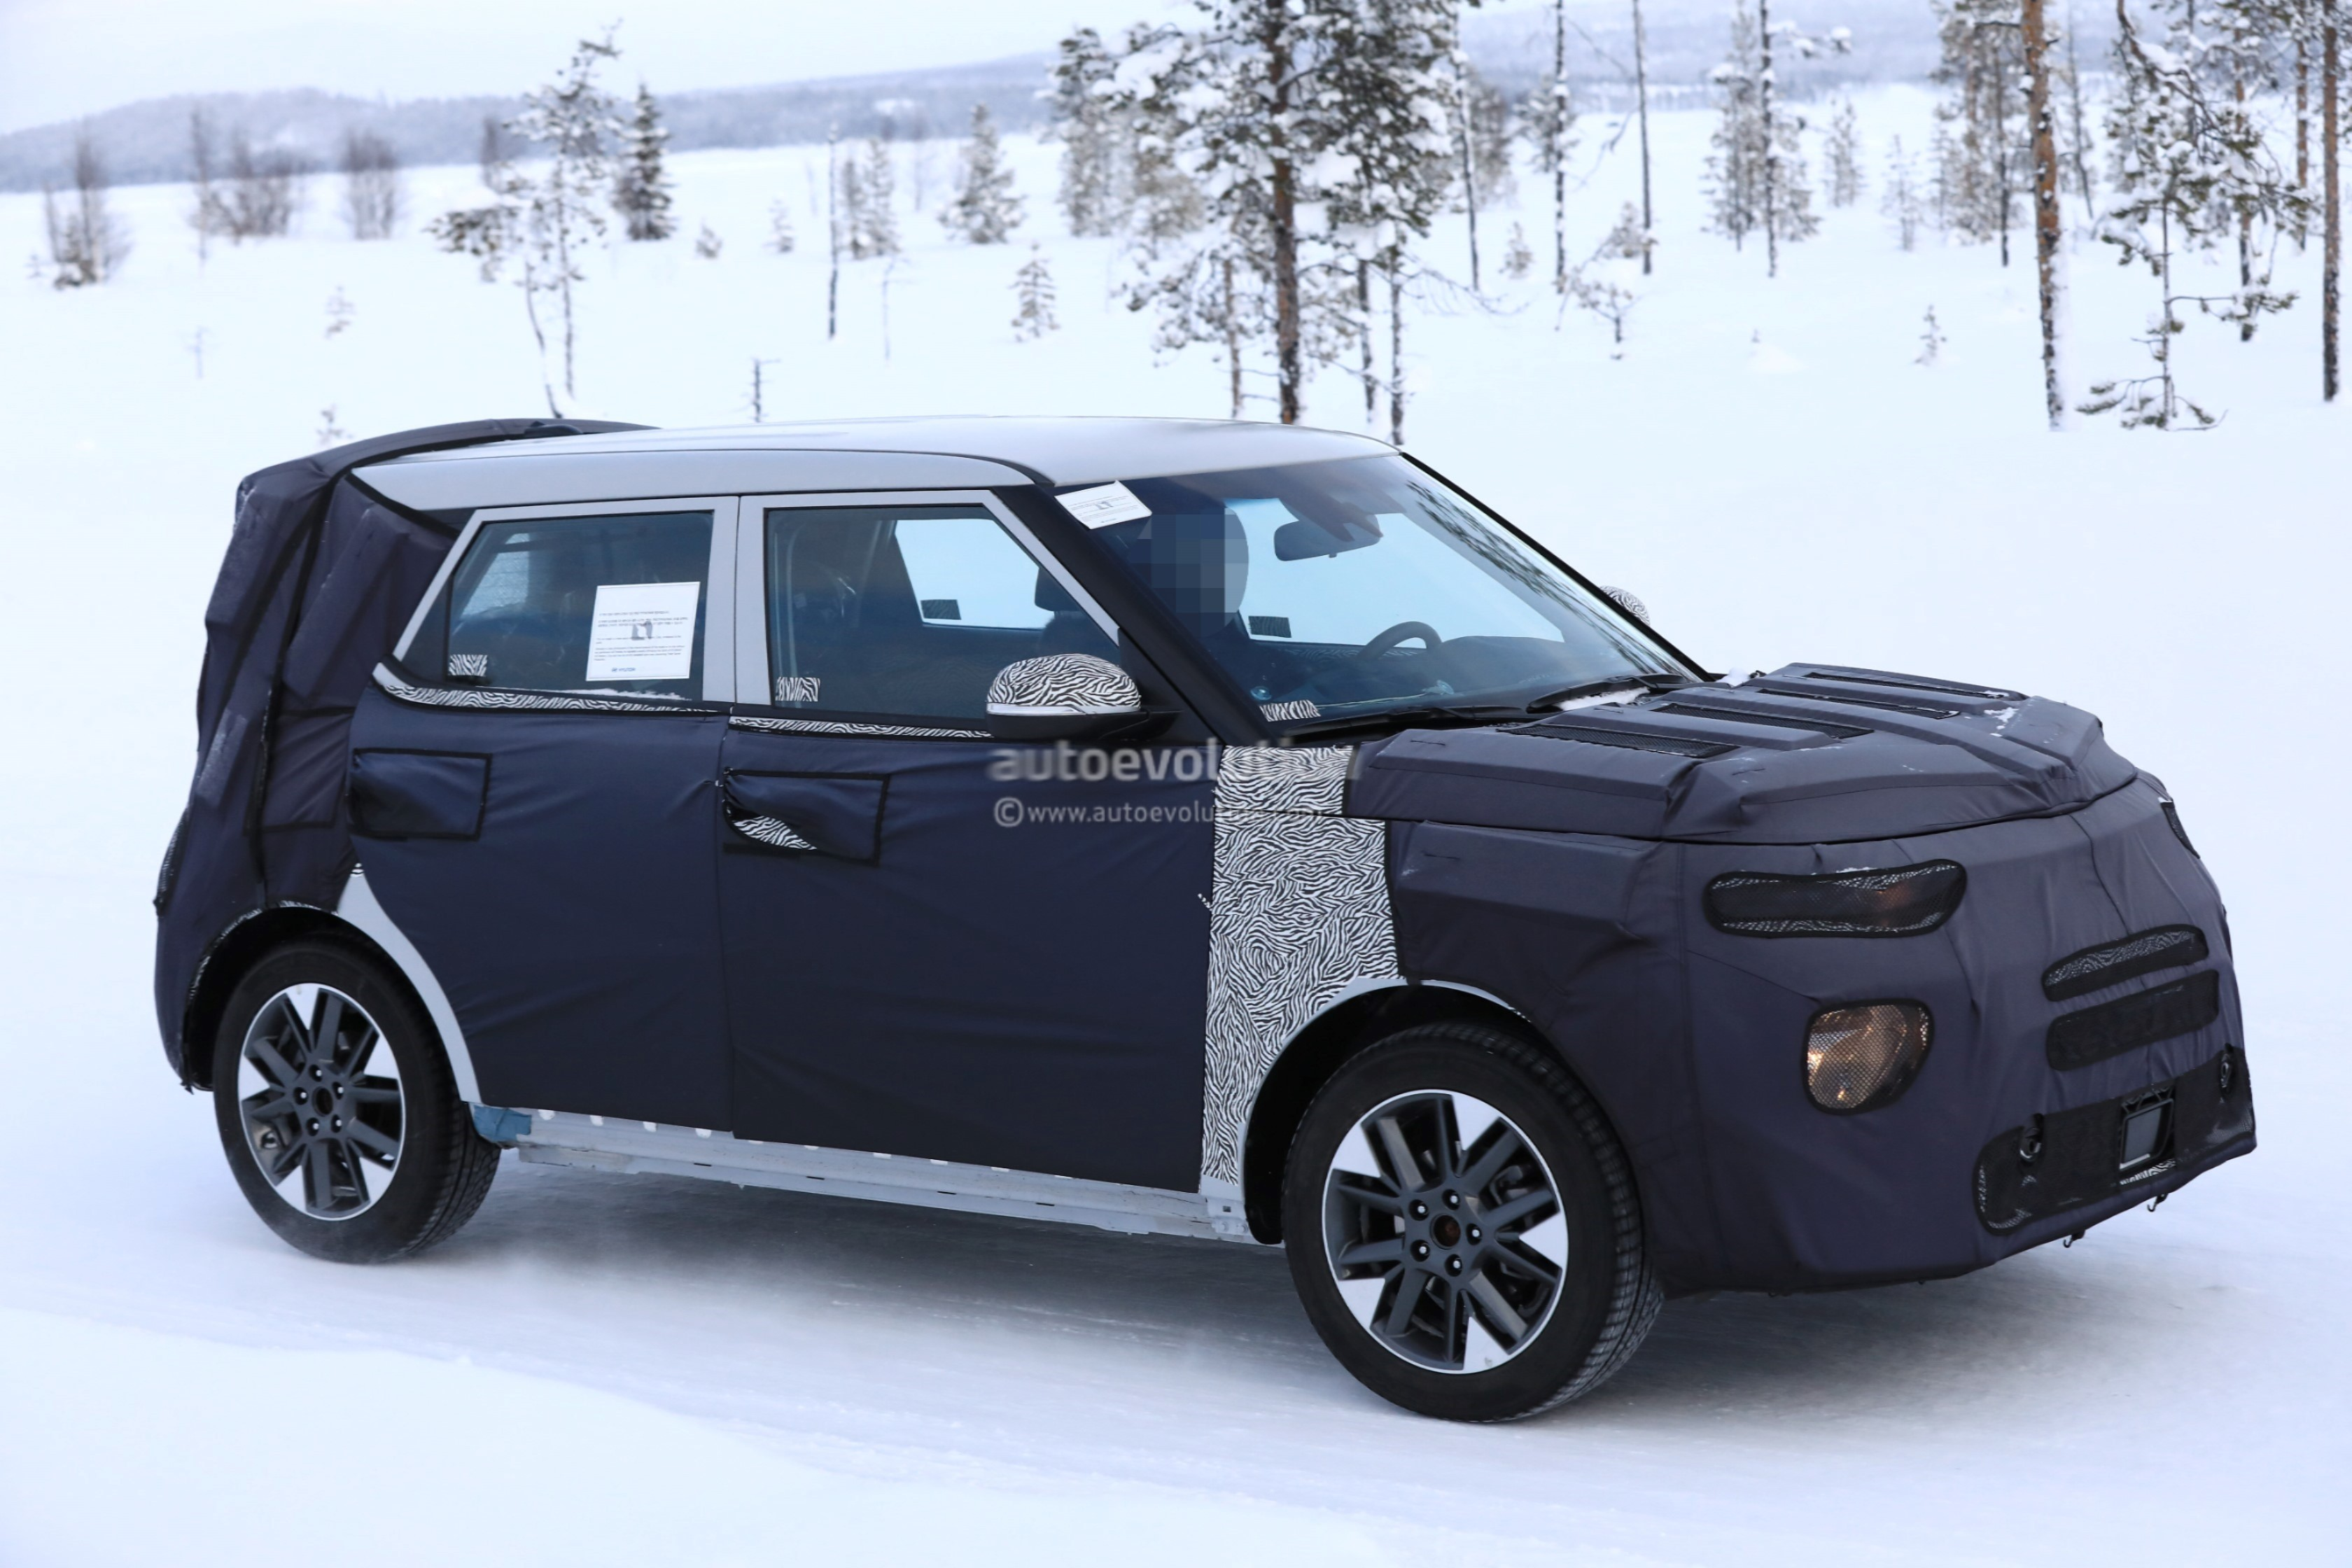 2020 Kia Soul Ev To Share Platform With Hyundai Kona Electric